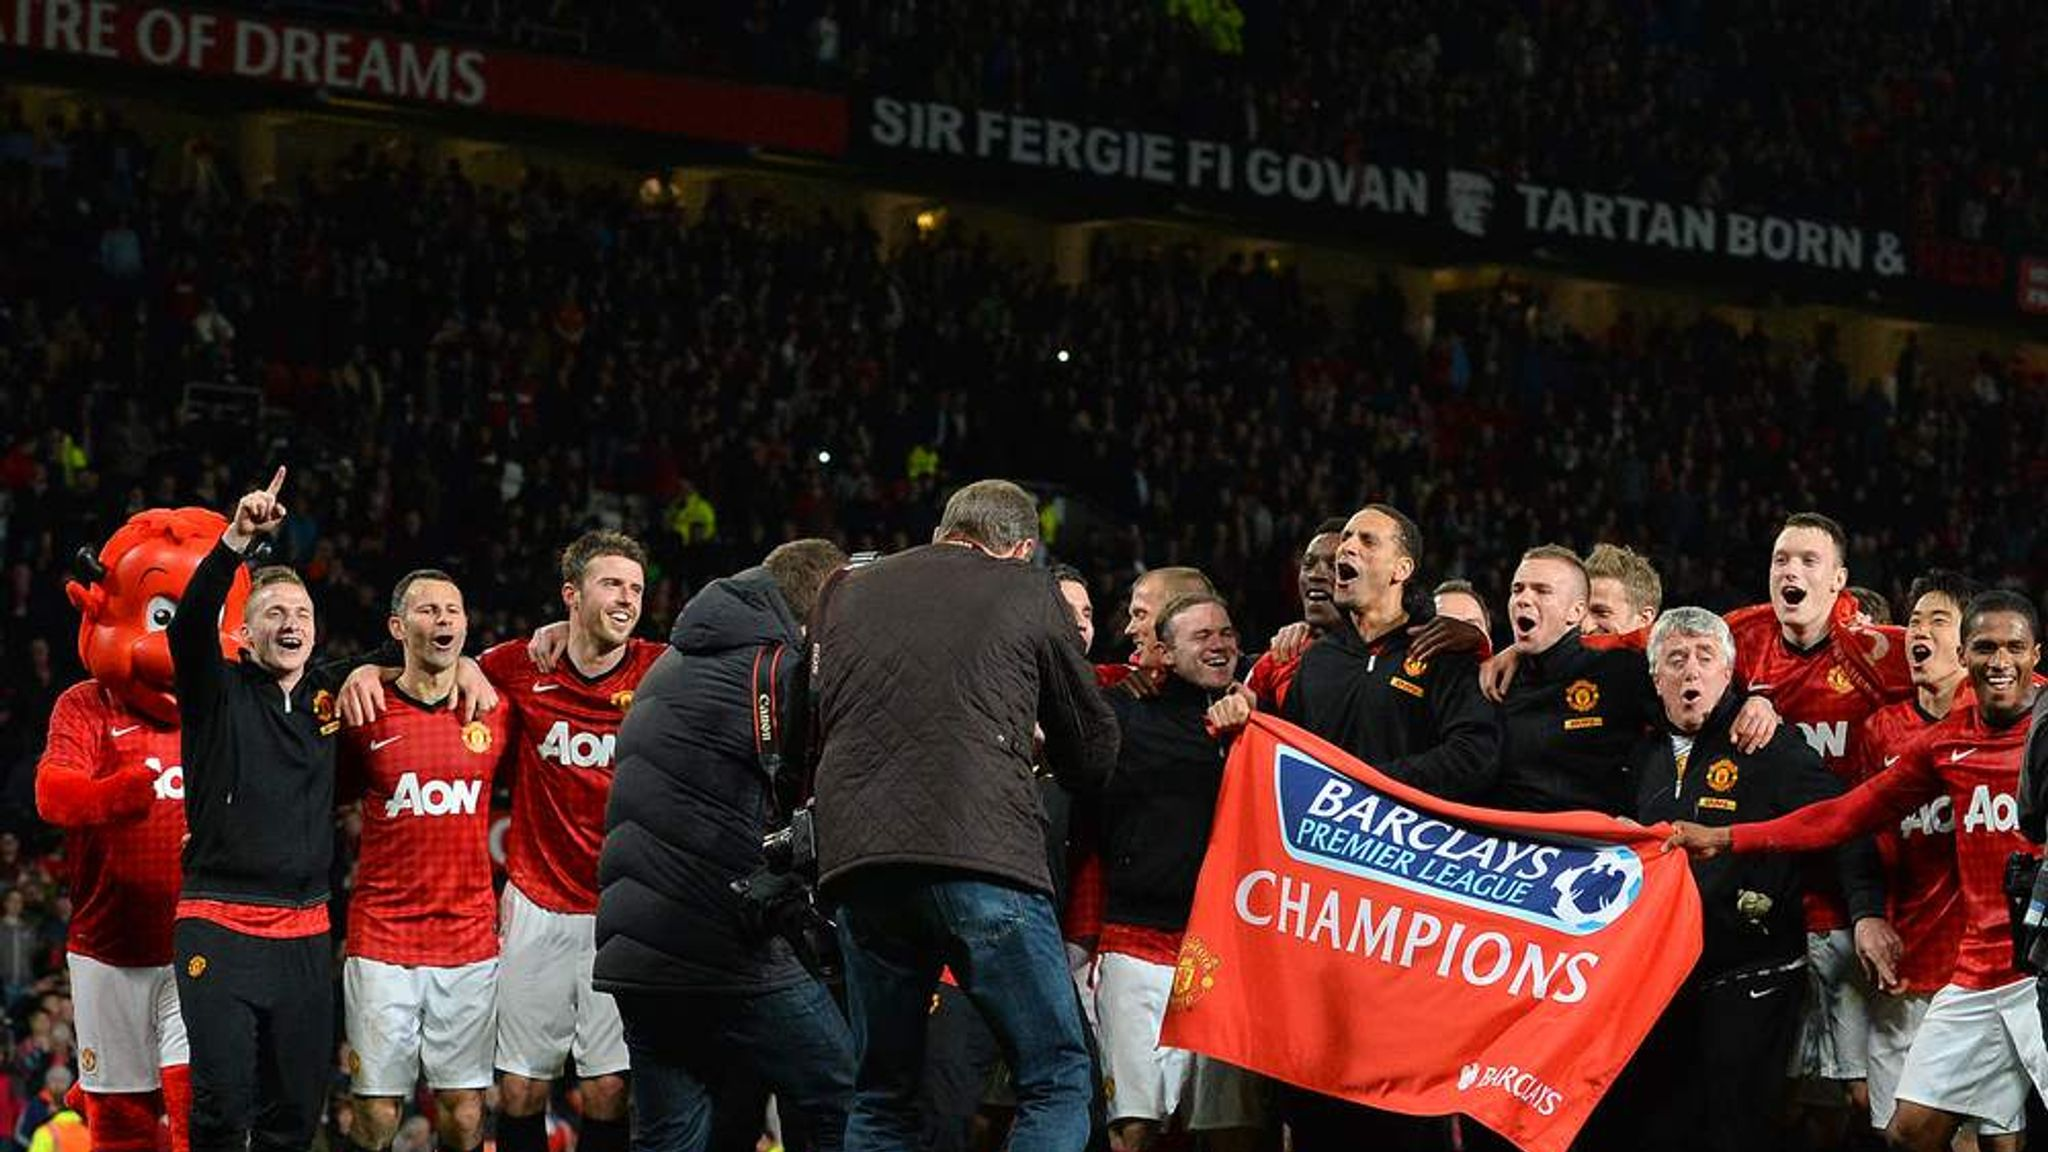 manchester uniteds debt crisis Manchester united have also succeeded in reducing their net debt, which was cut from £377 million to £308 million (£459 million gross debt less £151 million cash), after the club bought back £64 million of its bonds.